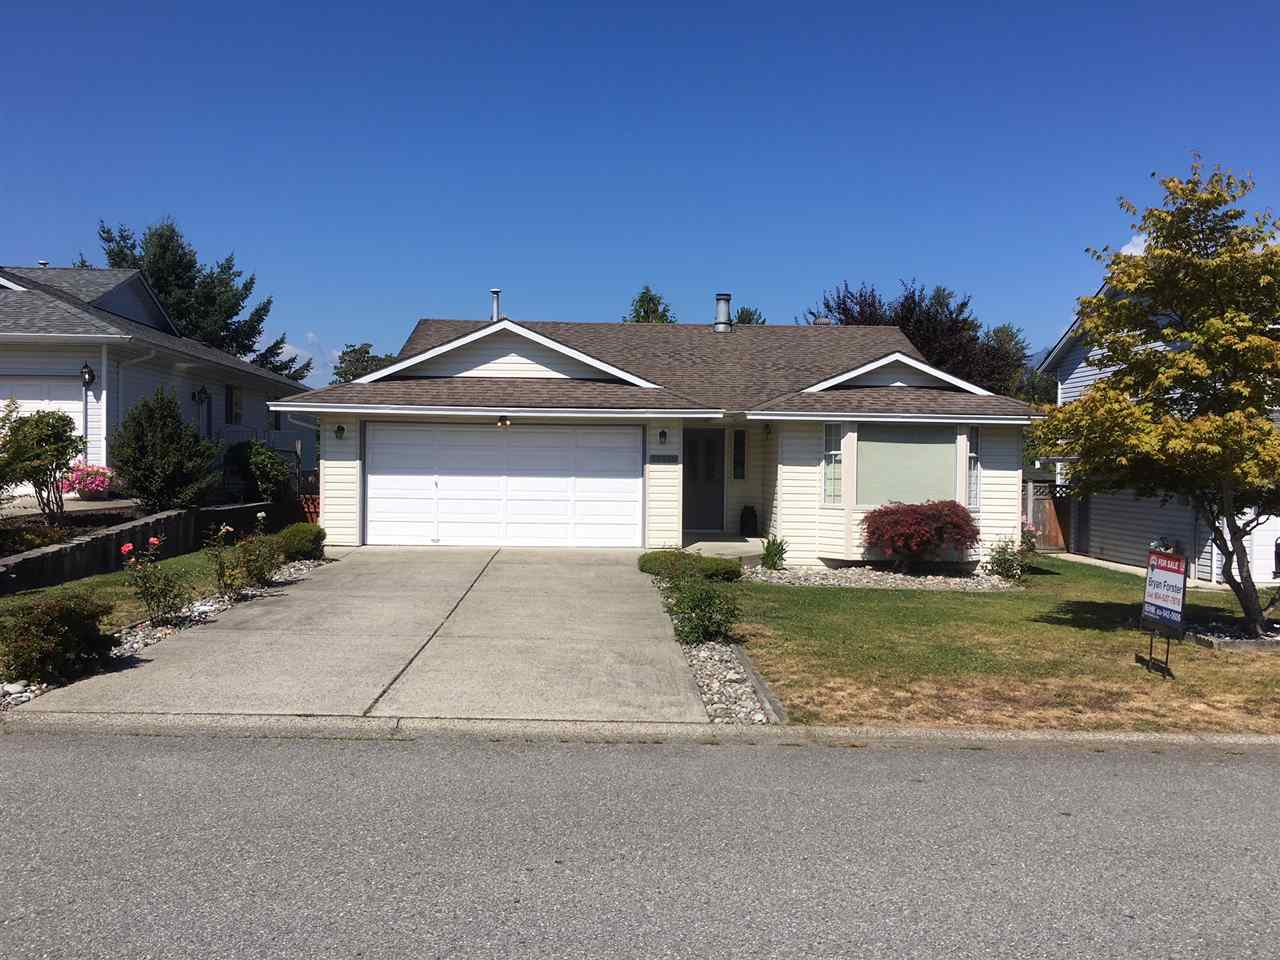 Removed: 22885 125a Avenue, Maple Ridge, BC - Removed on 2018-11-02 05:57:18